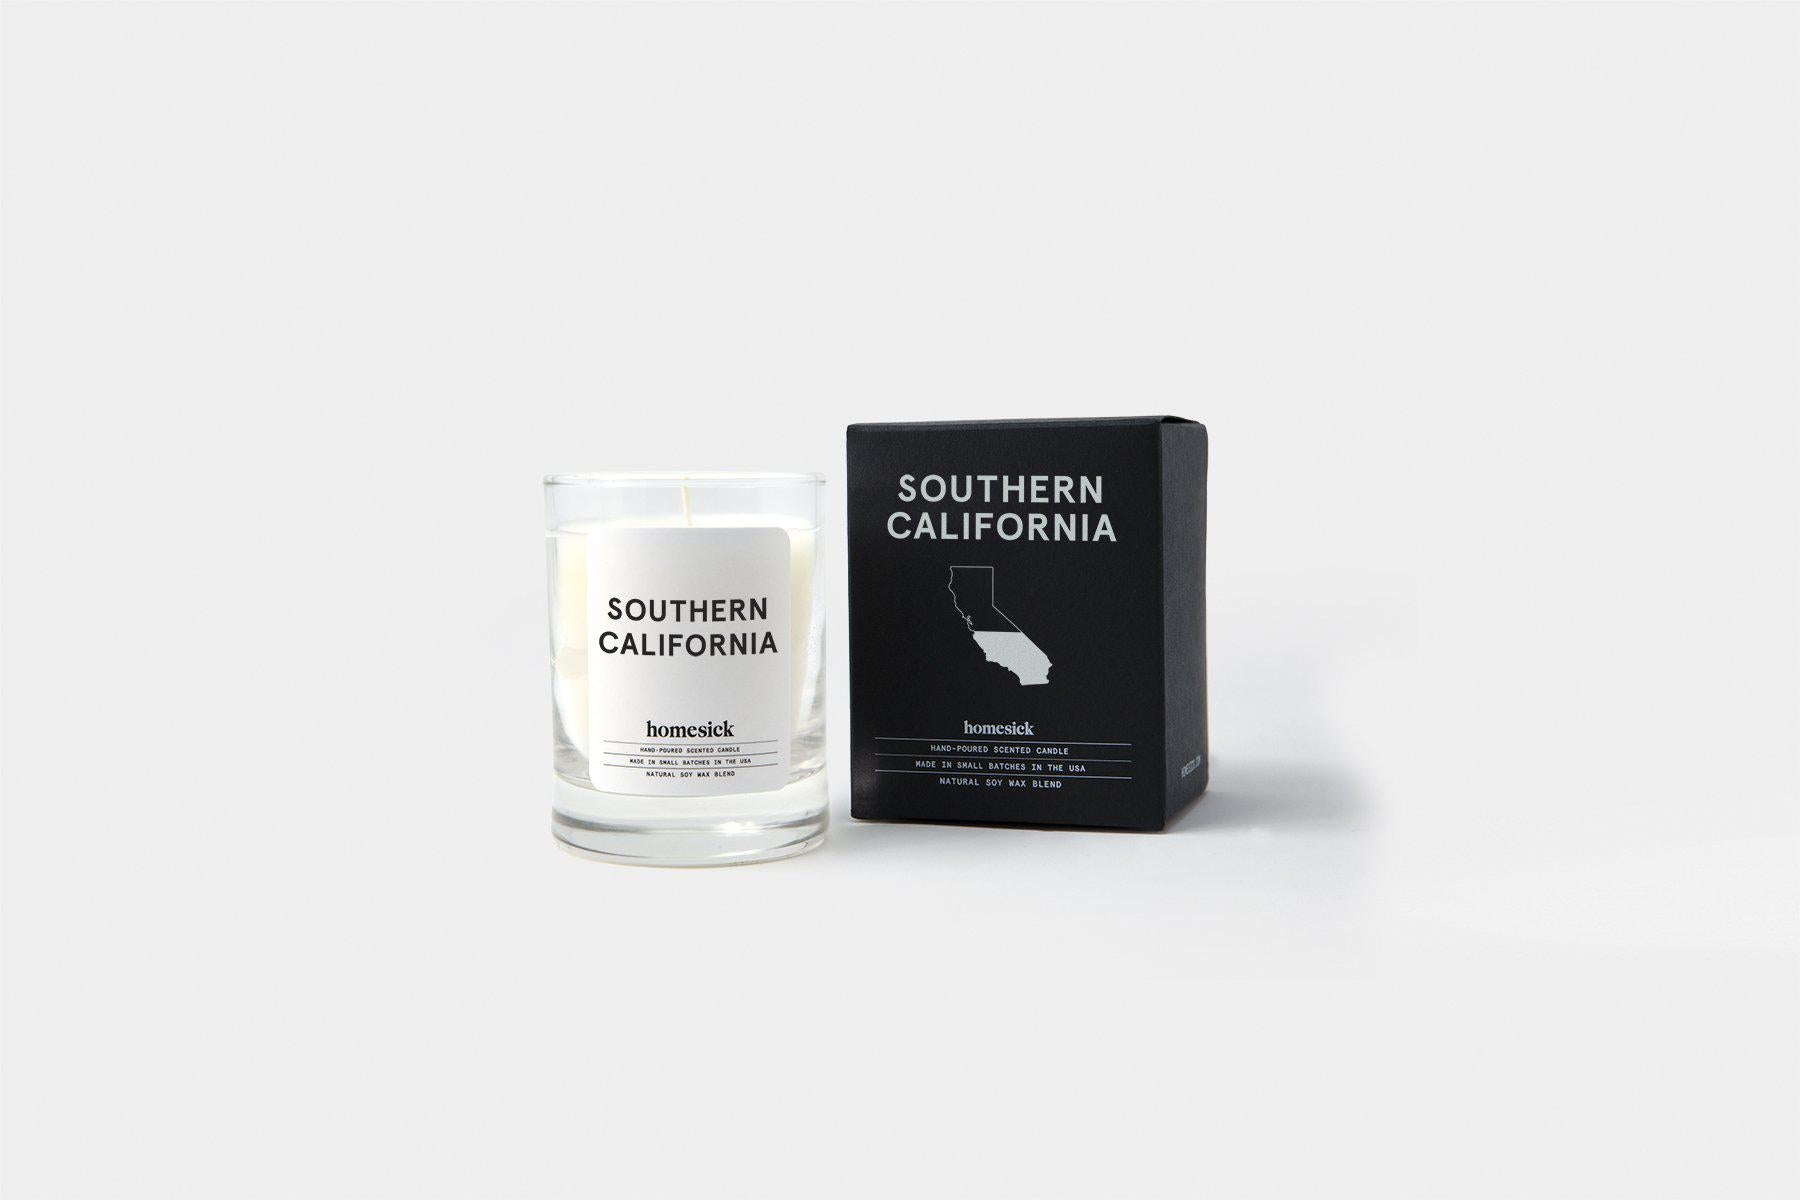 Southern California Wall Map, California Socal Mini Candle, Southern California Wall Map